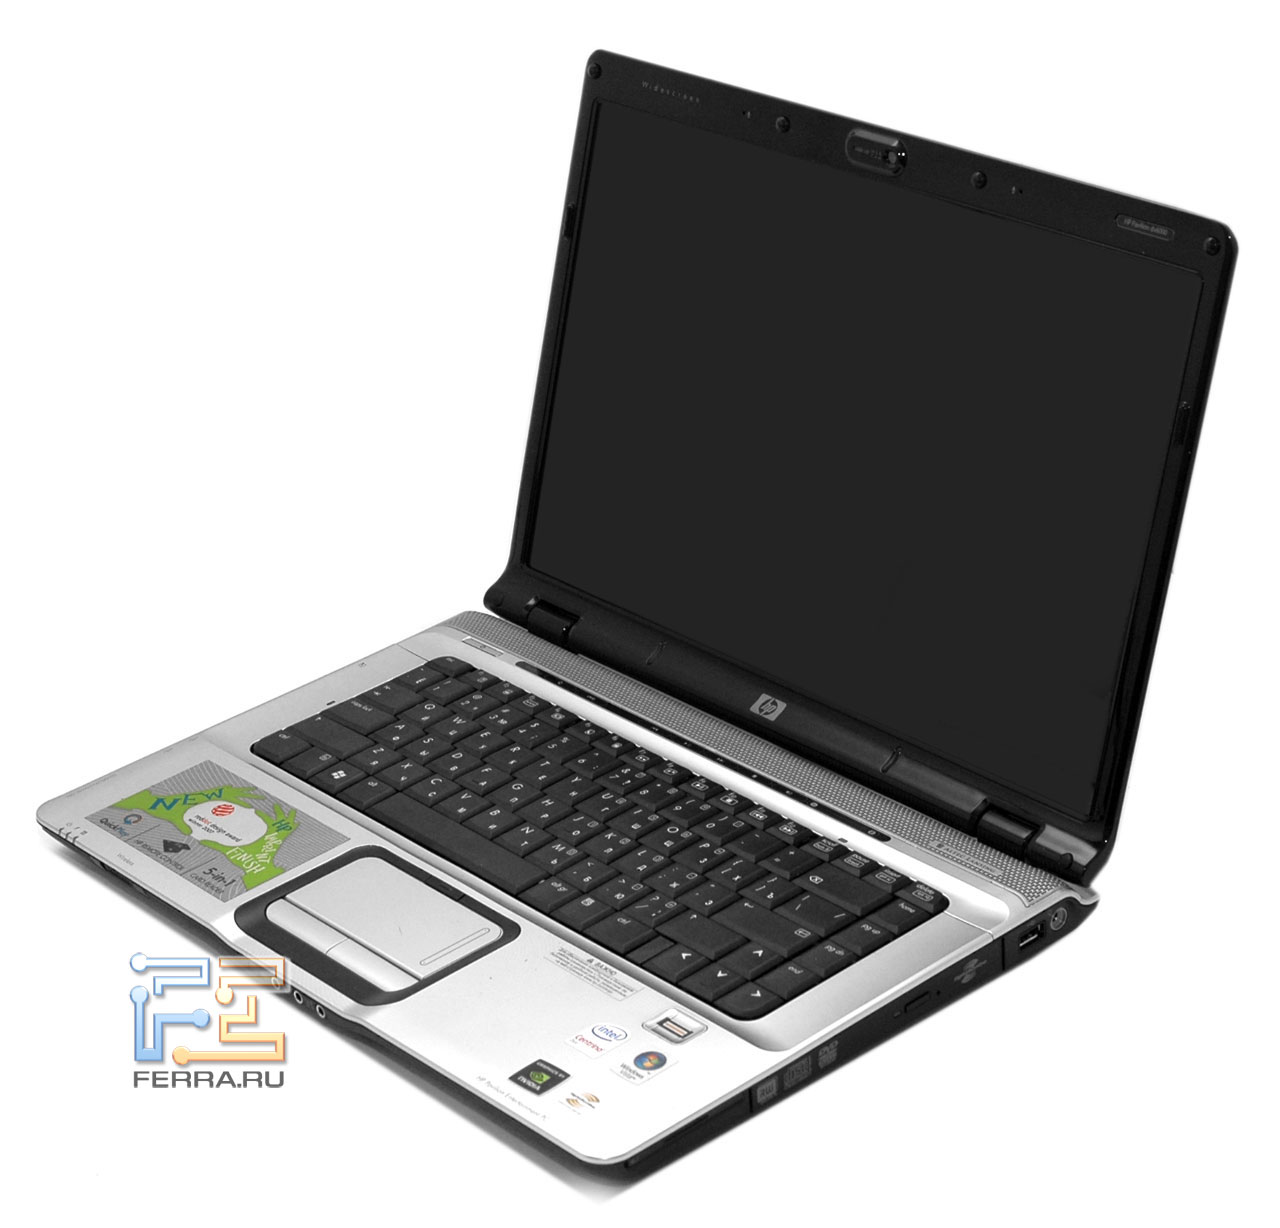 Other Laptops Amp Notebooks Hp Pavilion Dv6000 Ka070ea